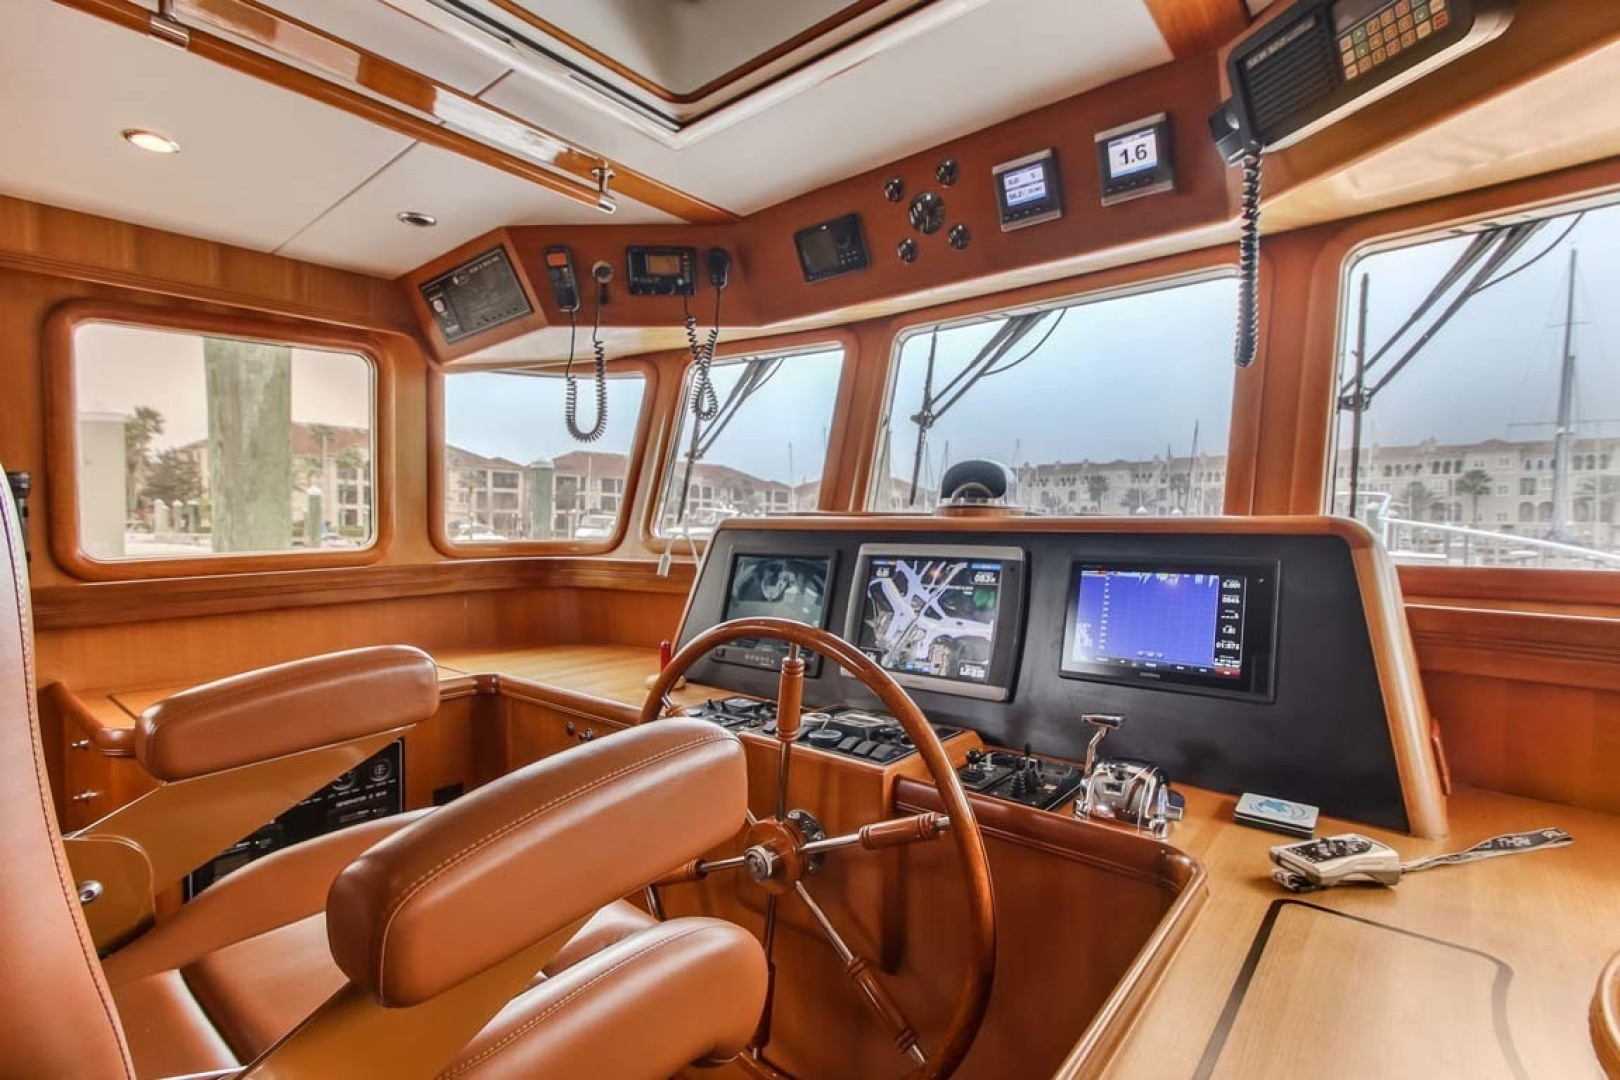 Selene-60 Ocean Trawler 2010-Gypsy Magic Jacksonville-Florida-United States-Helm station-1346720 | Thumbnail